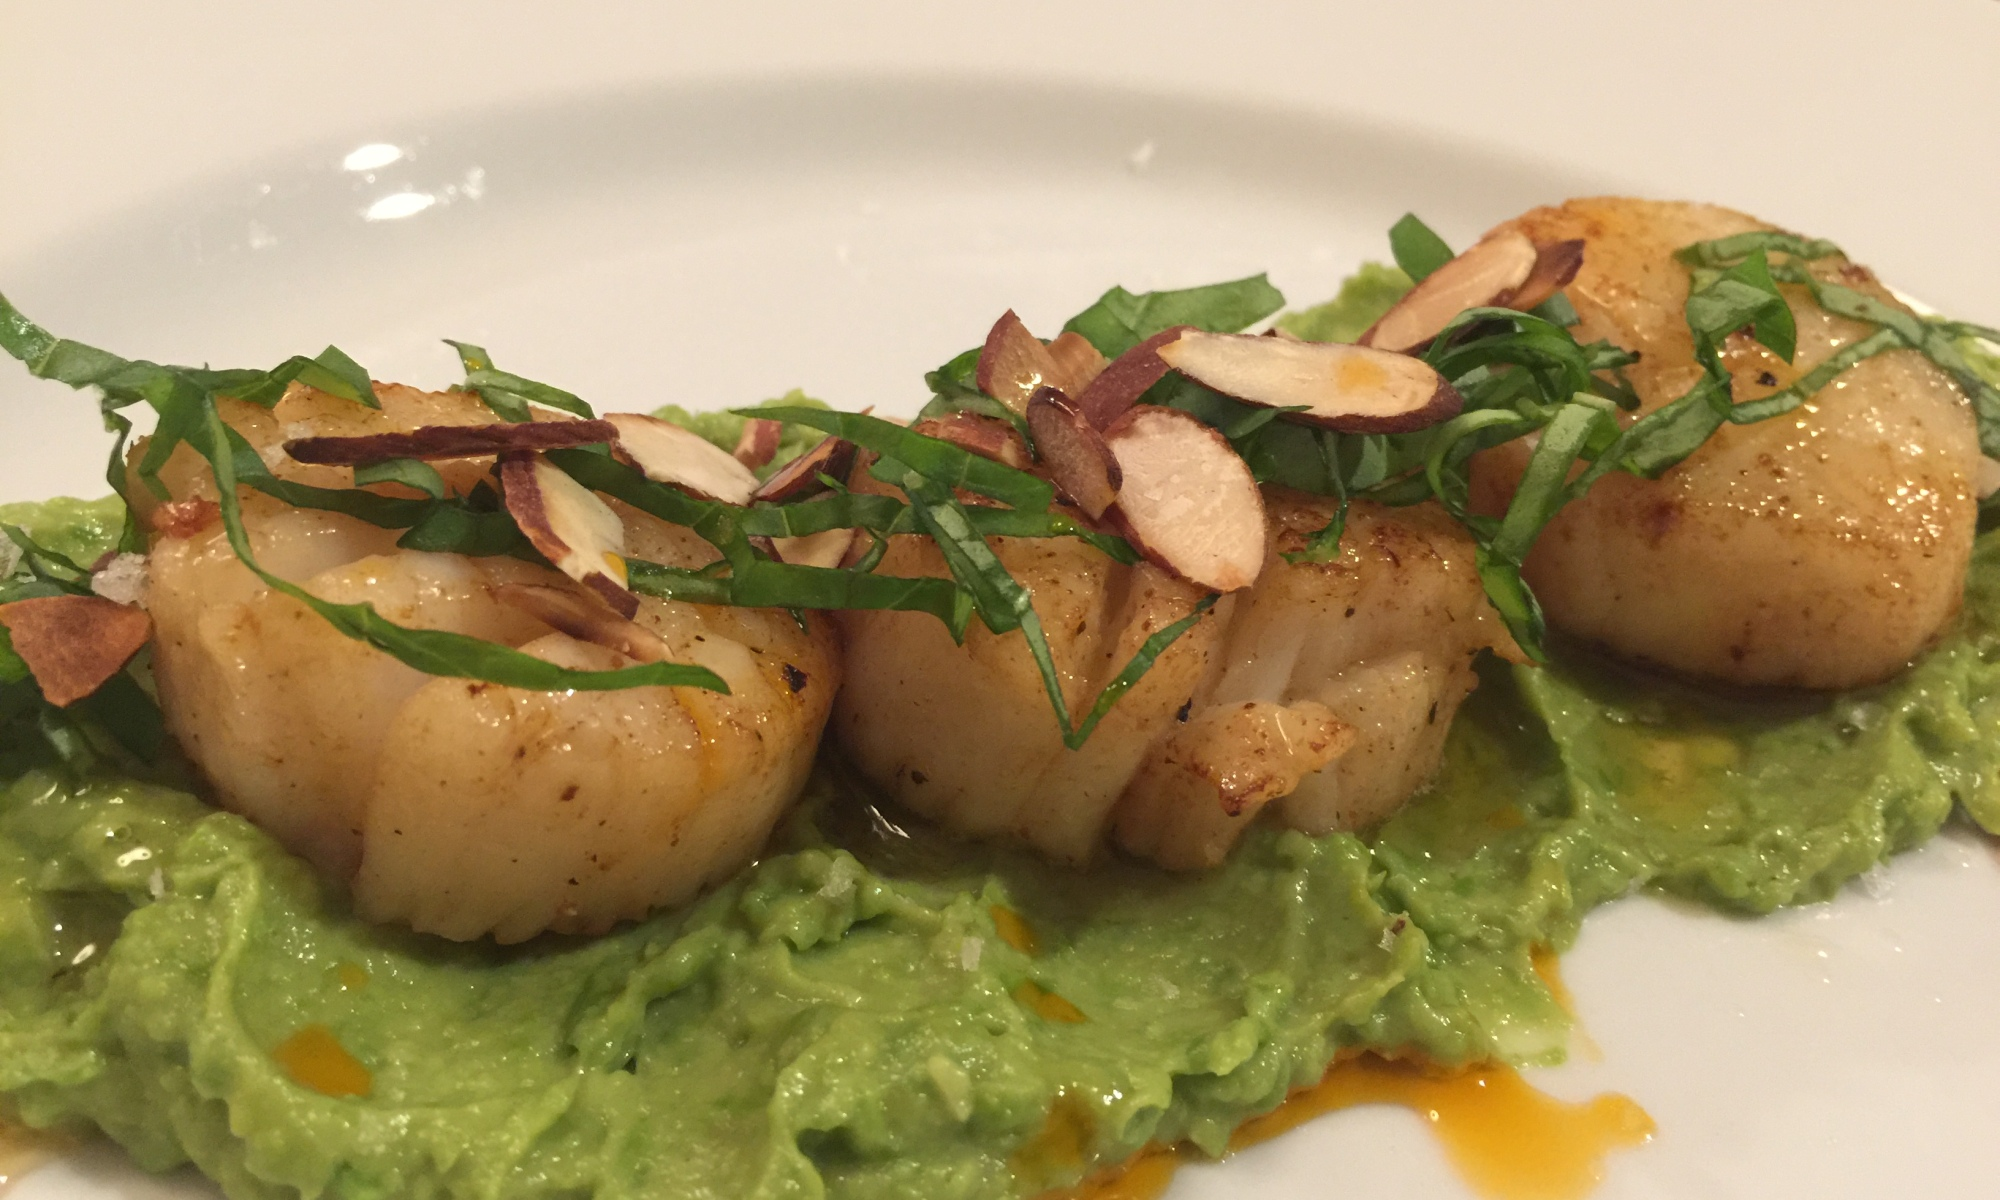 Scallops with Sweet Pea Avocado Spread